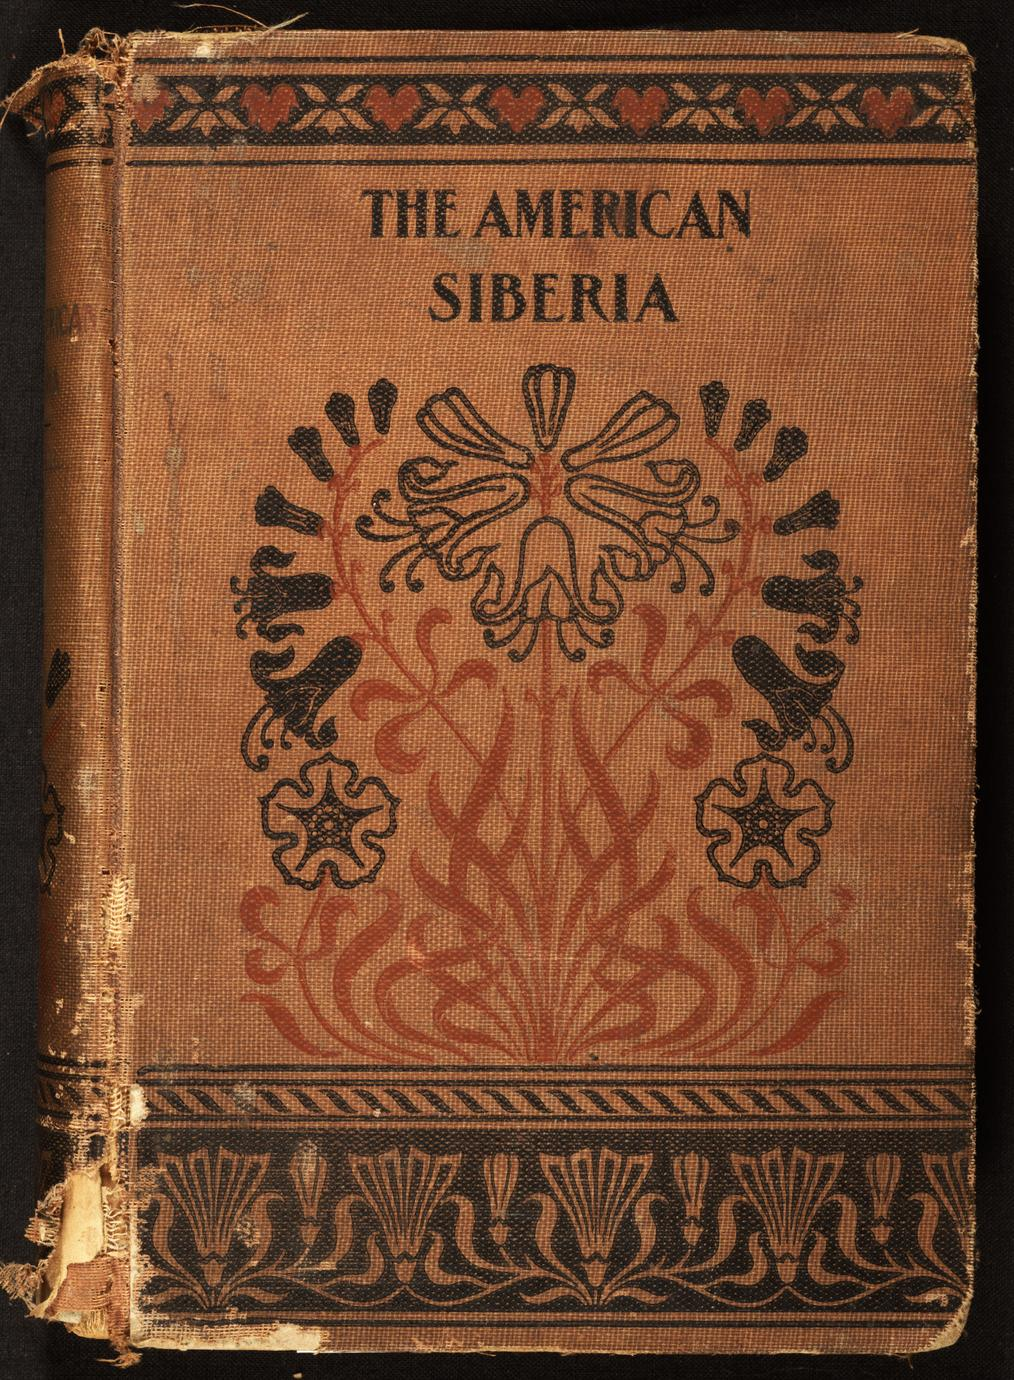 American Siberia ; or, Fourteen years' experience in a southern convict camp (1 of 2)